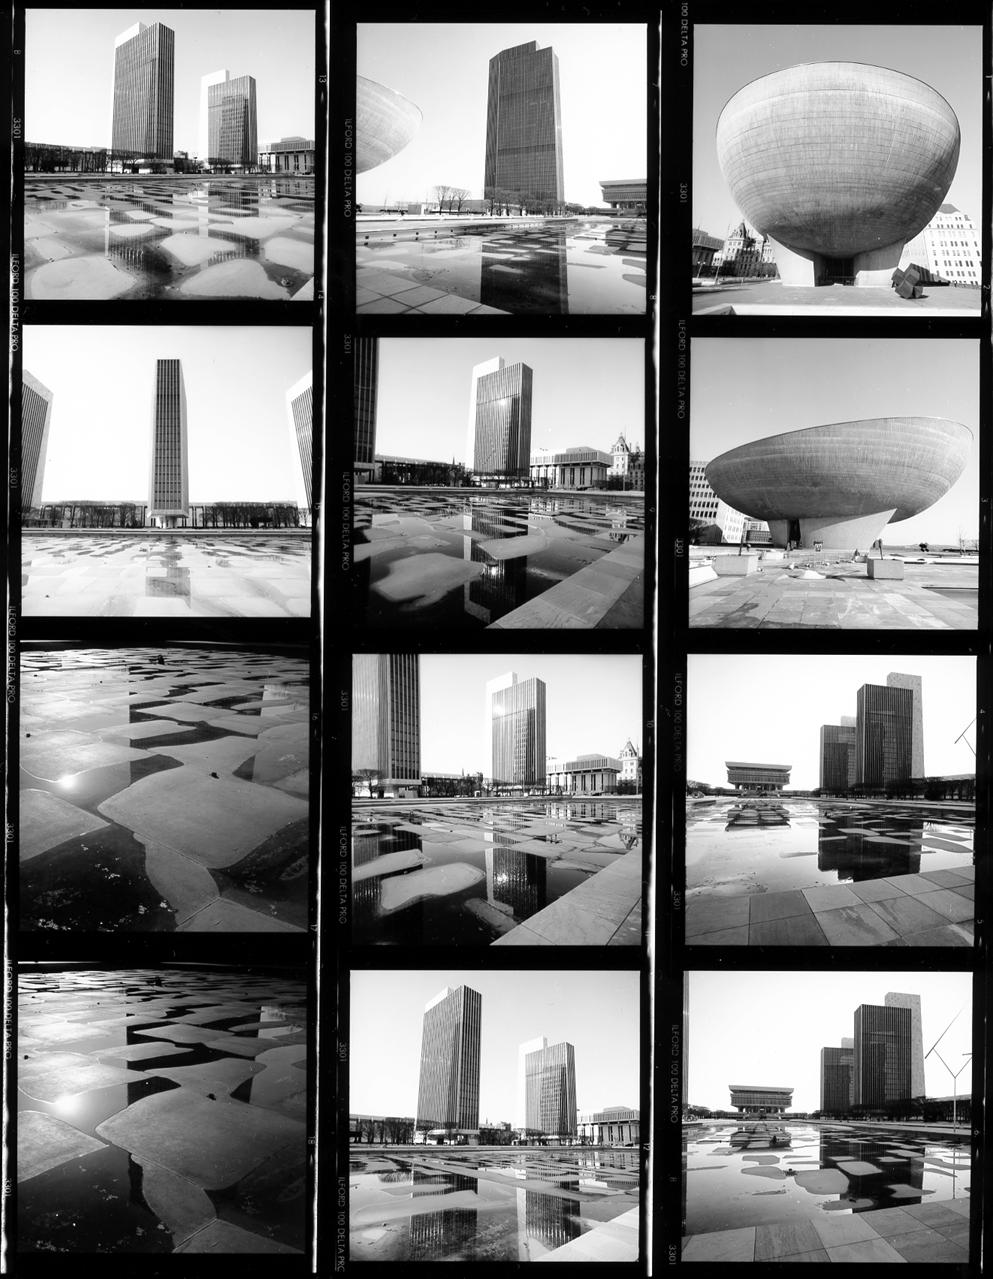 rockefeller empire state plaza at low tide mar a hull ray